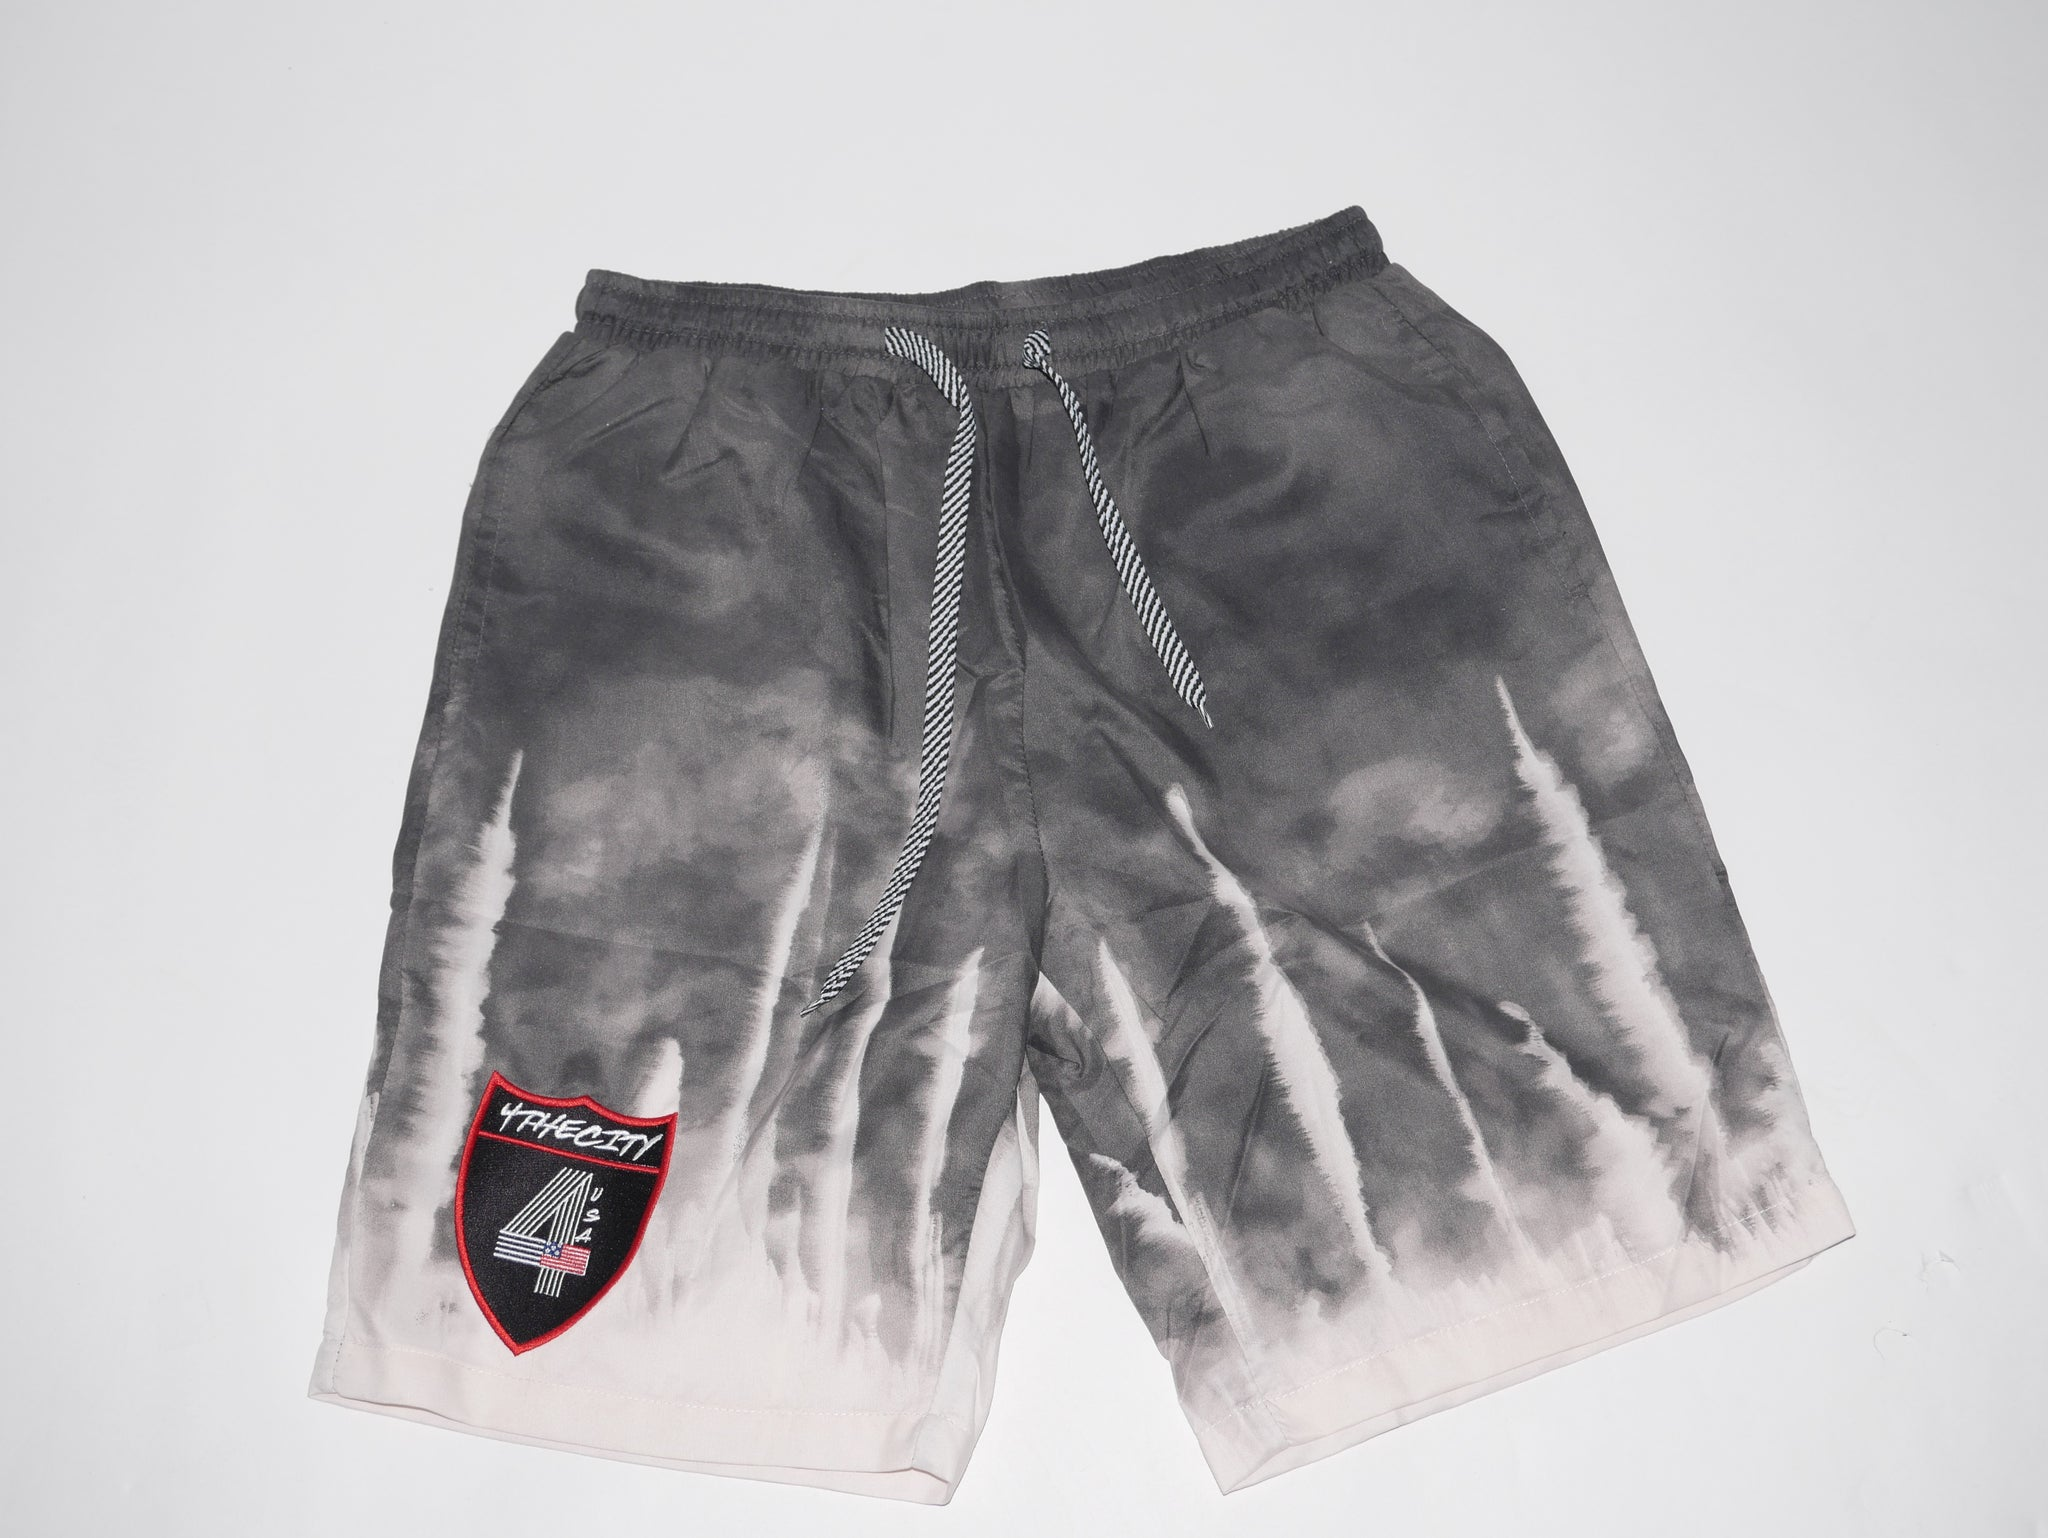 4TC GREY & OffWhite shorts